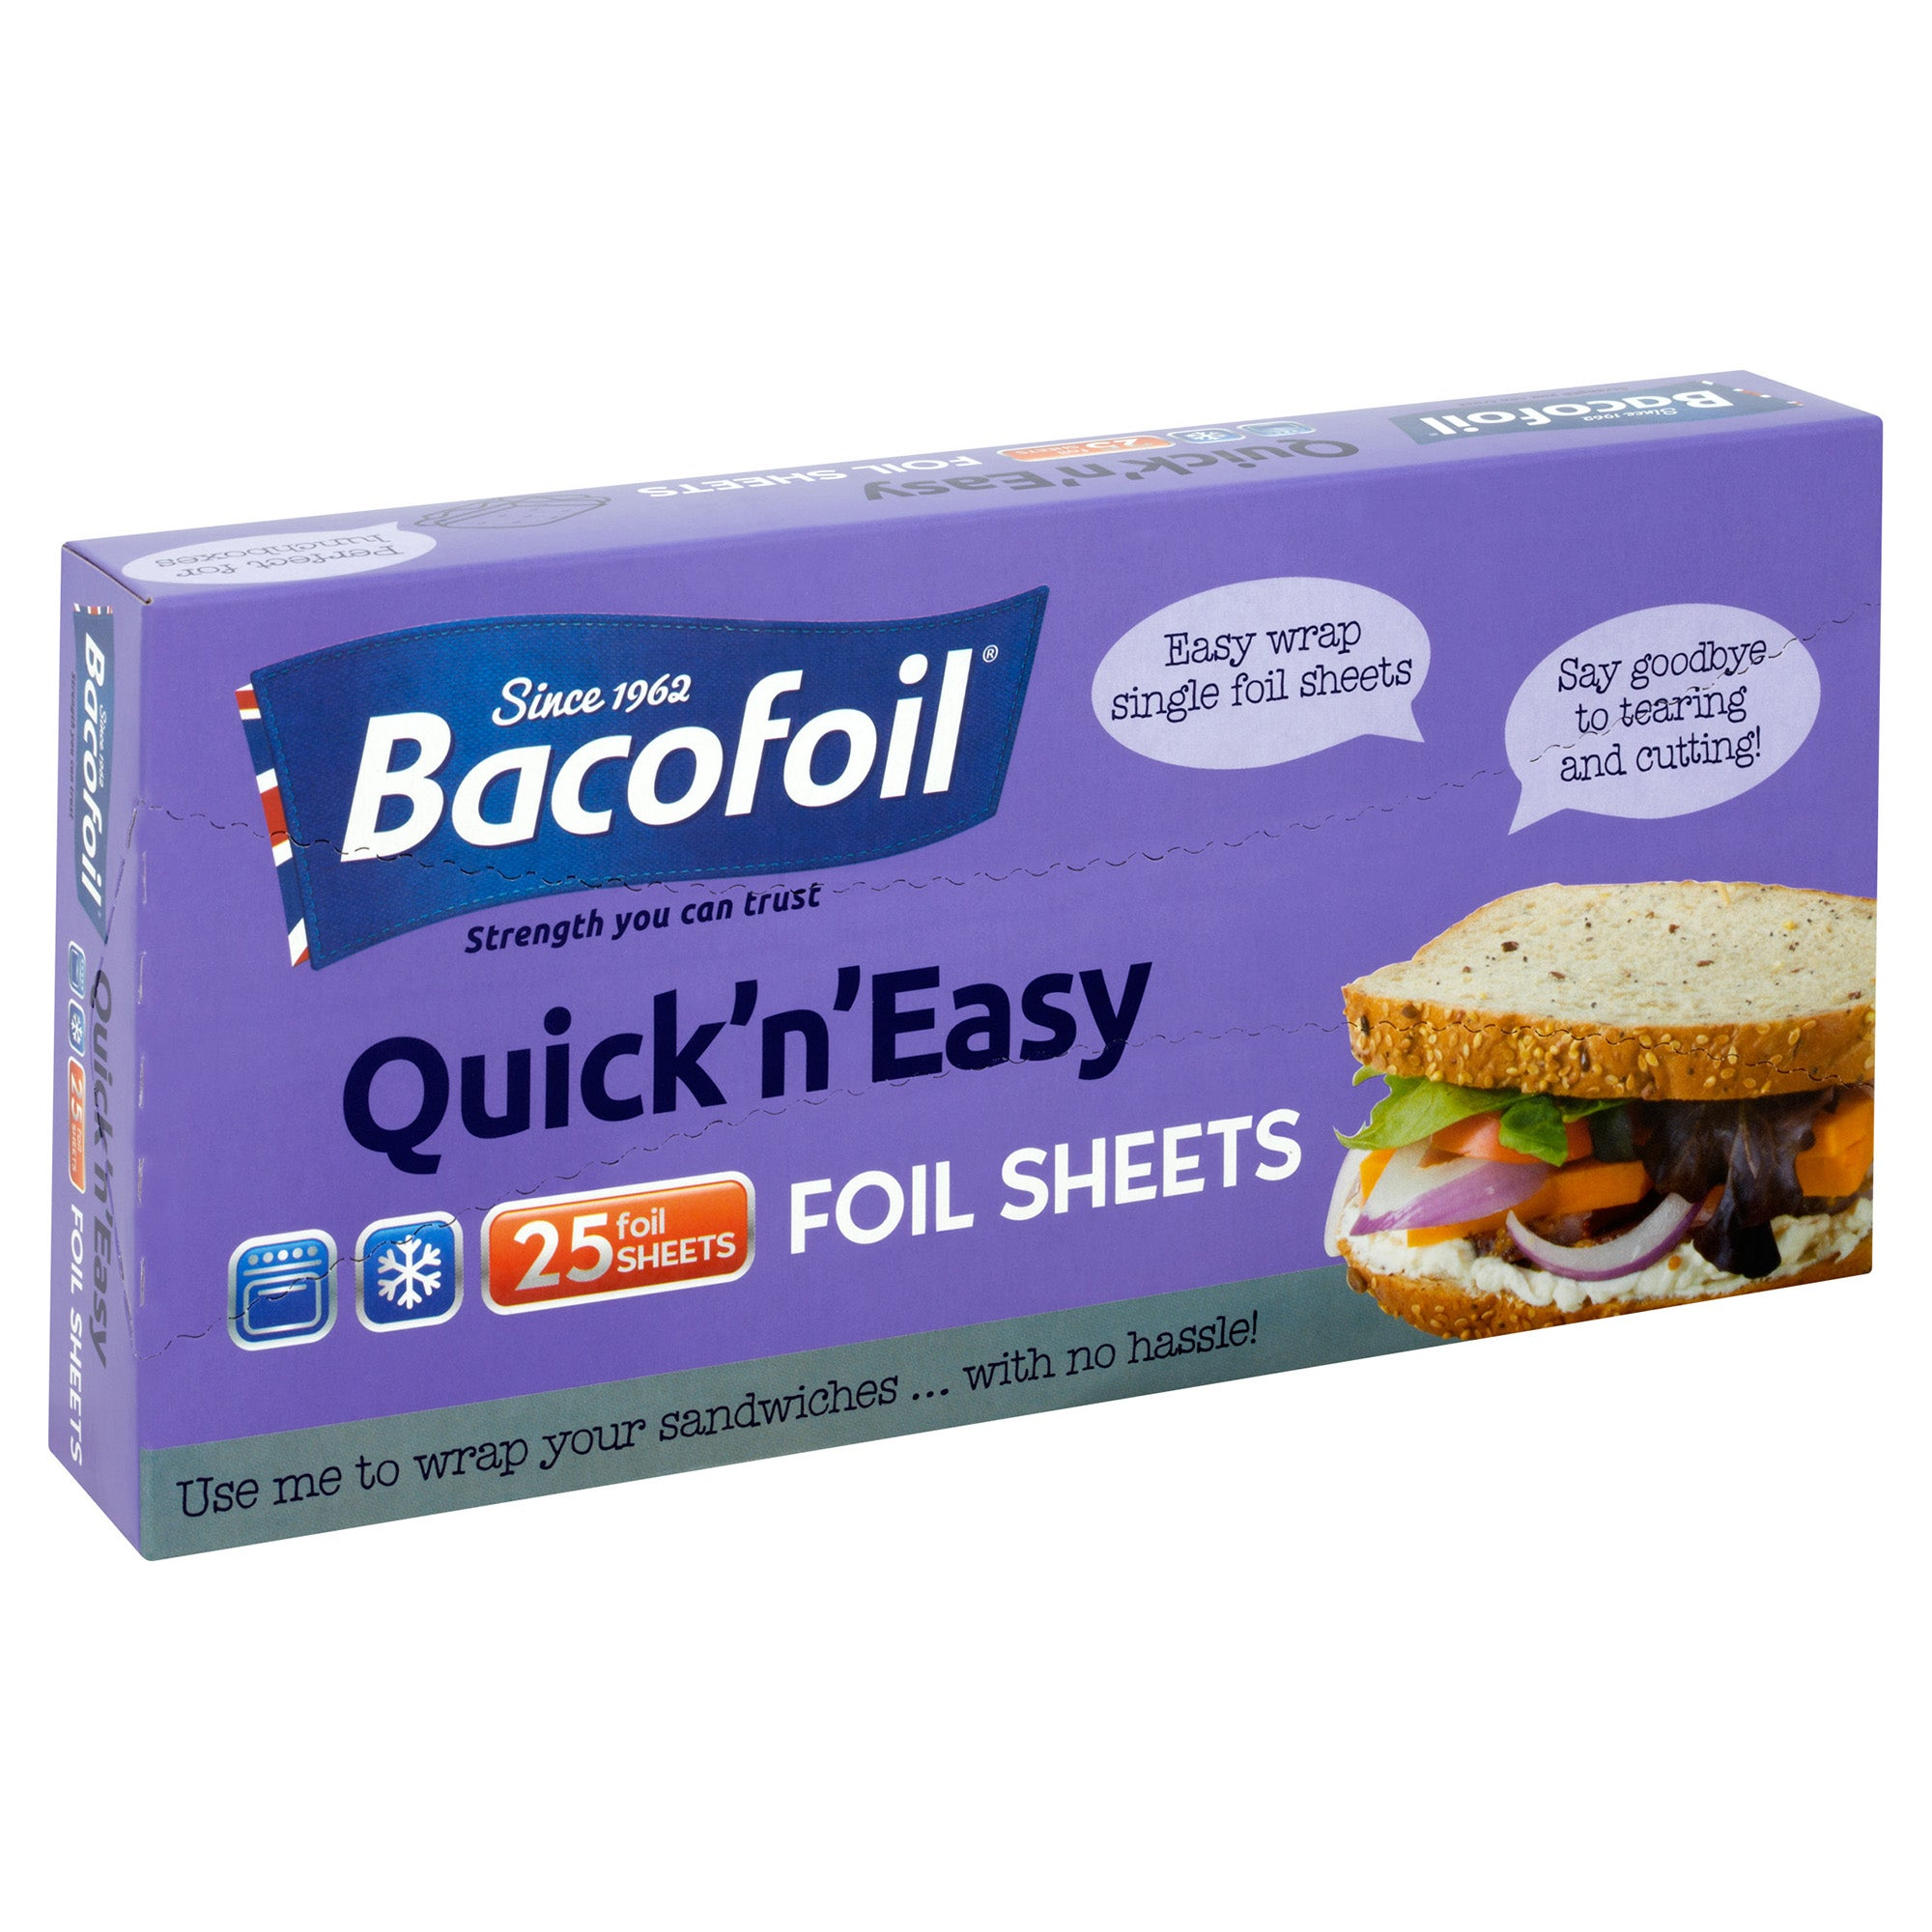 BacoFoil Foil Sheets